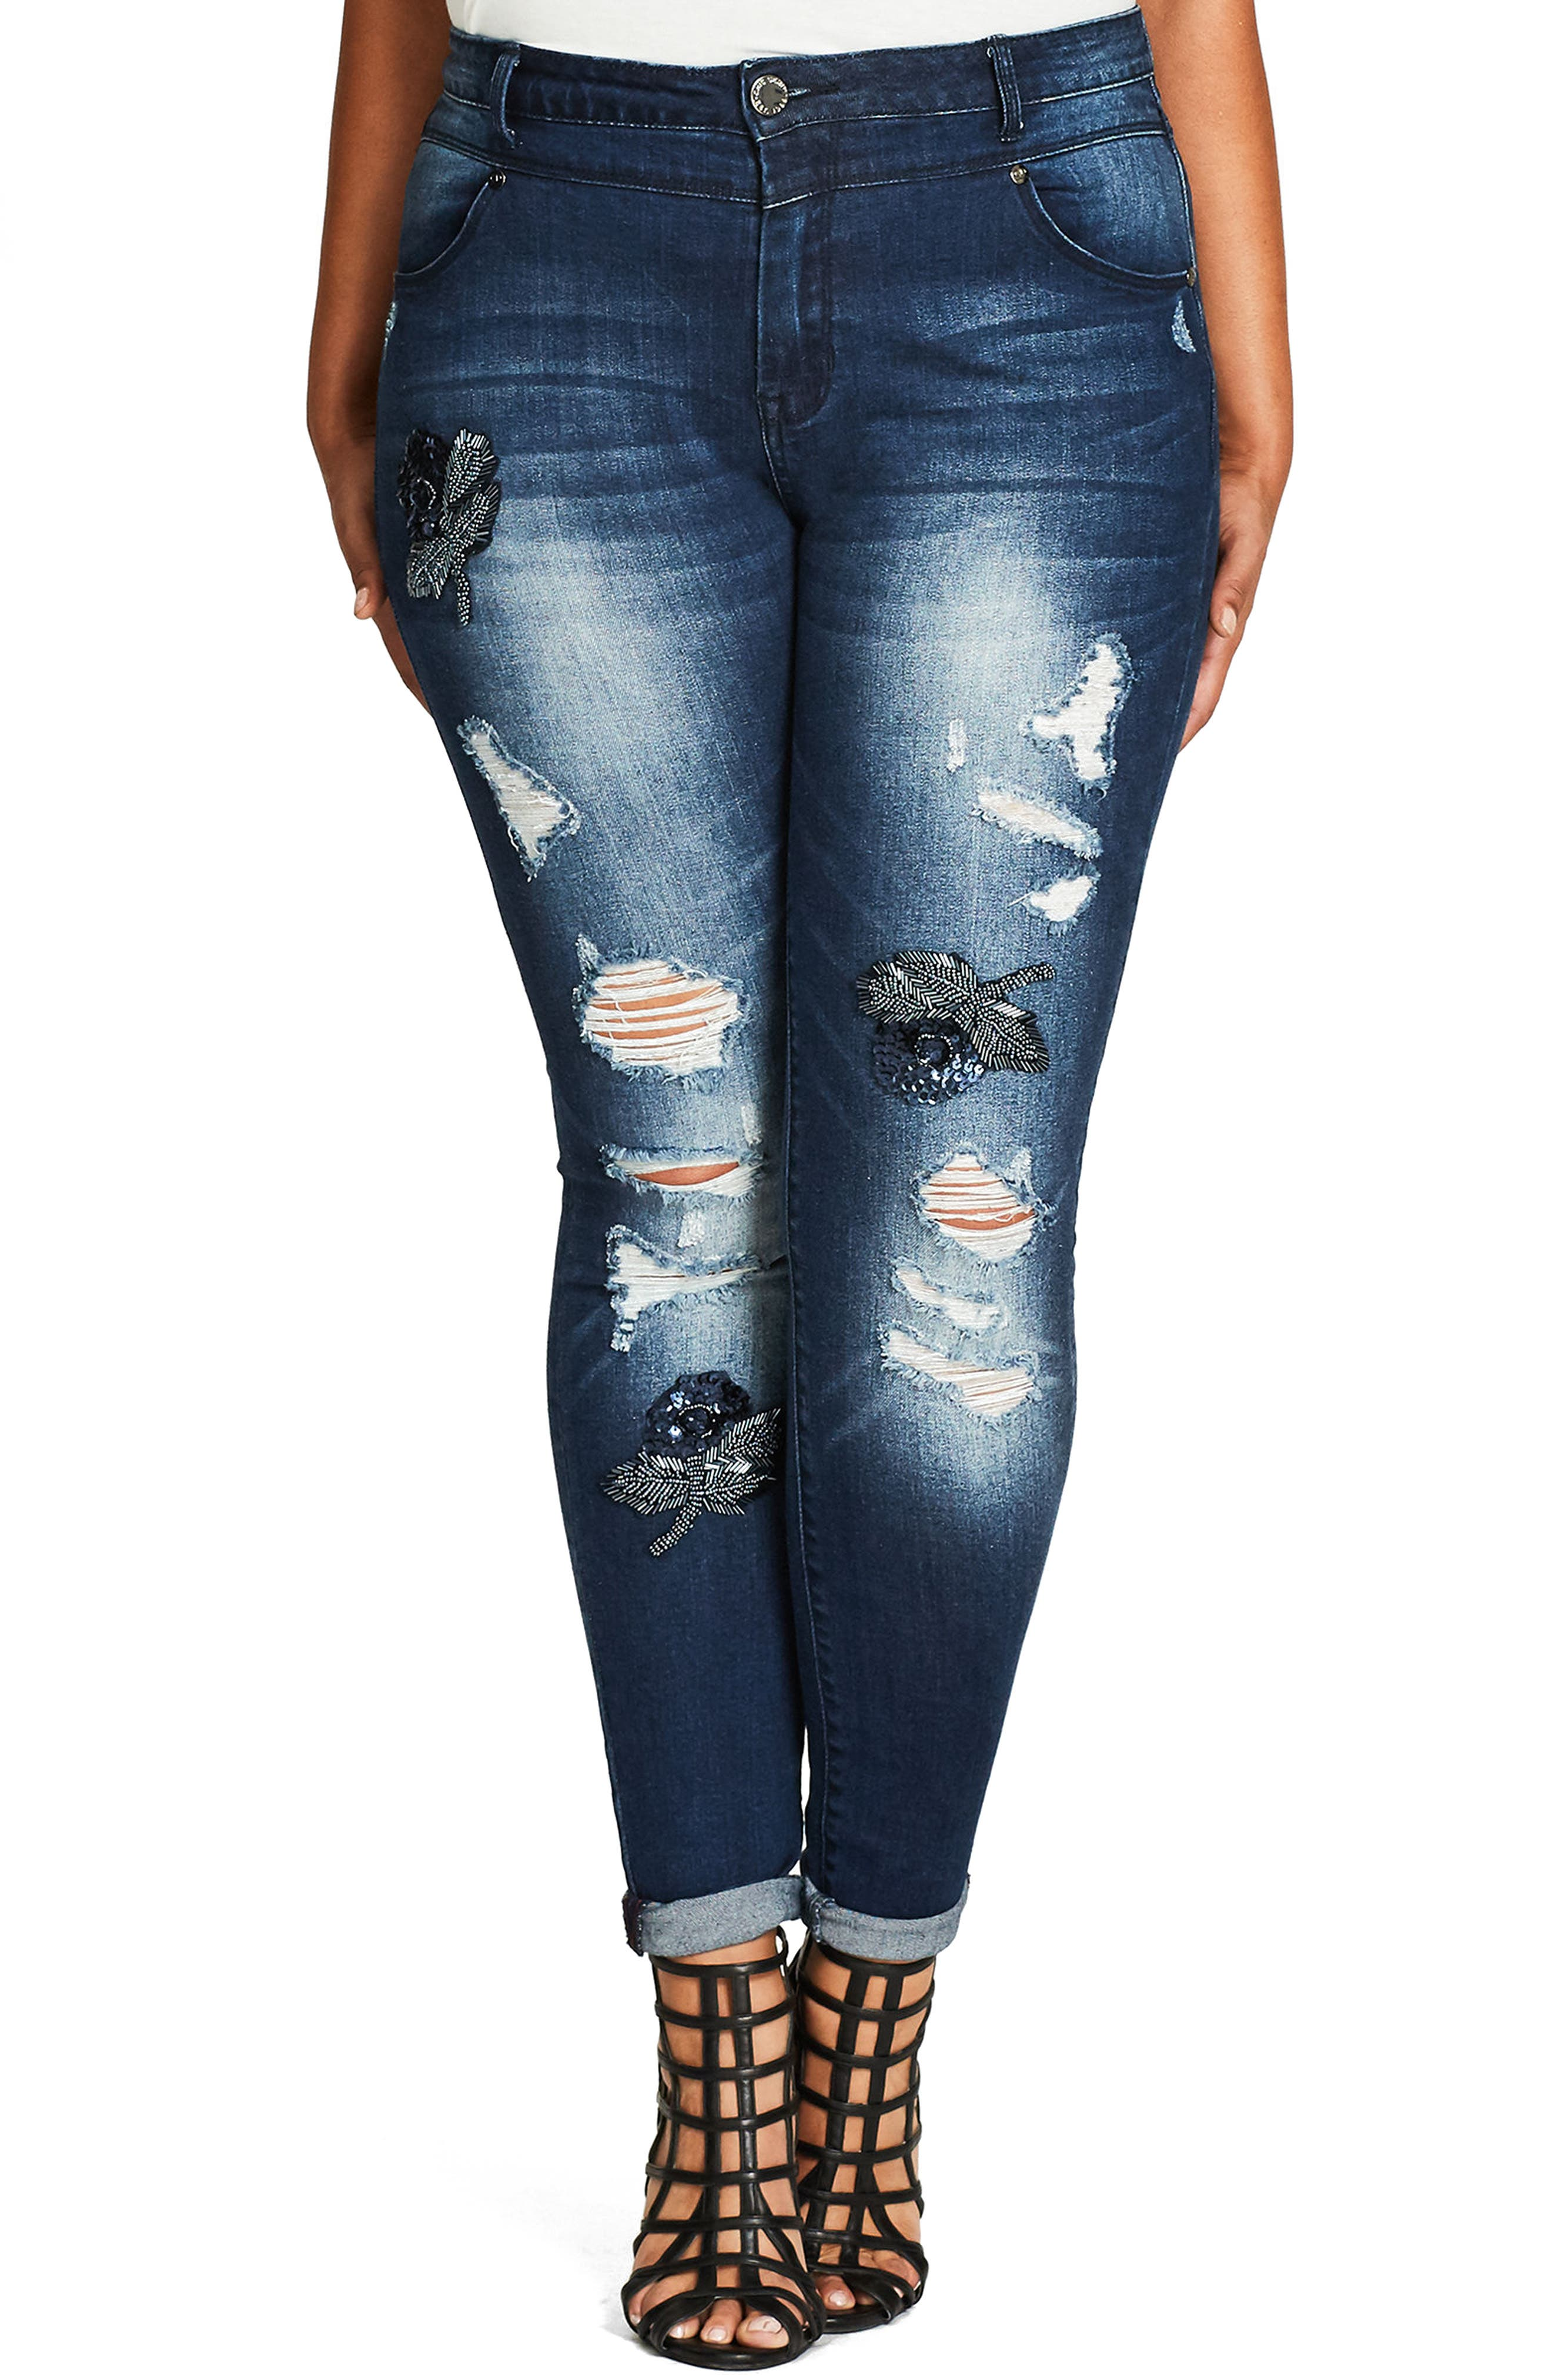 Main Image - City Chic Embellished Destroyed Skinny Jeans (Plus Size)